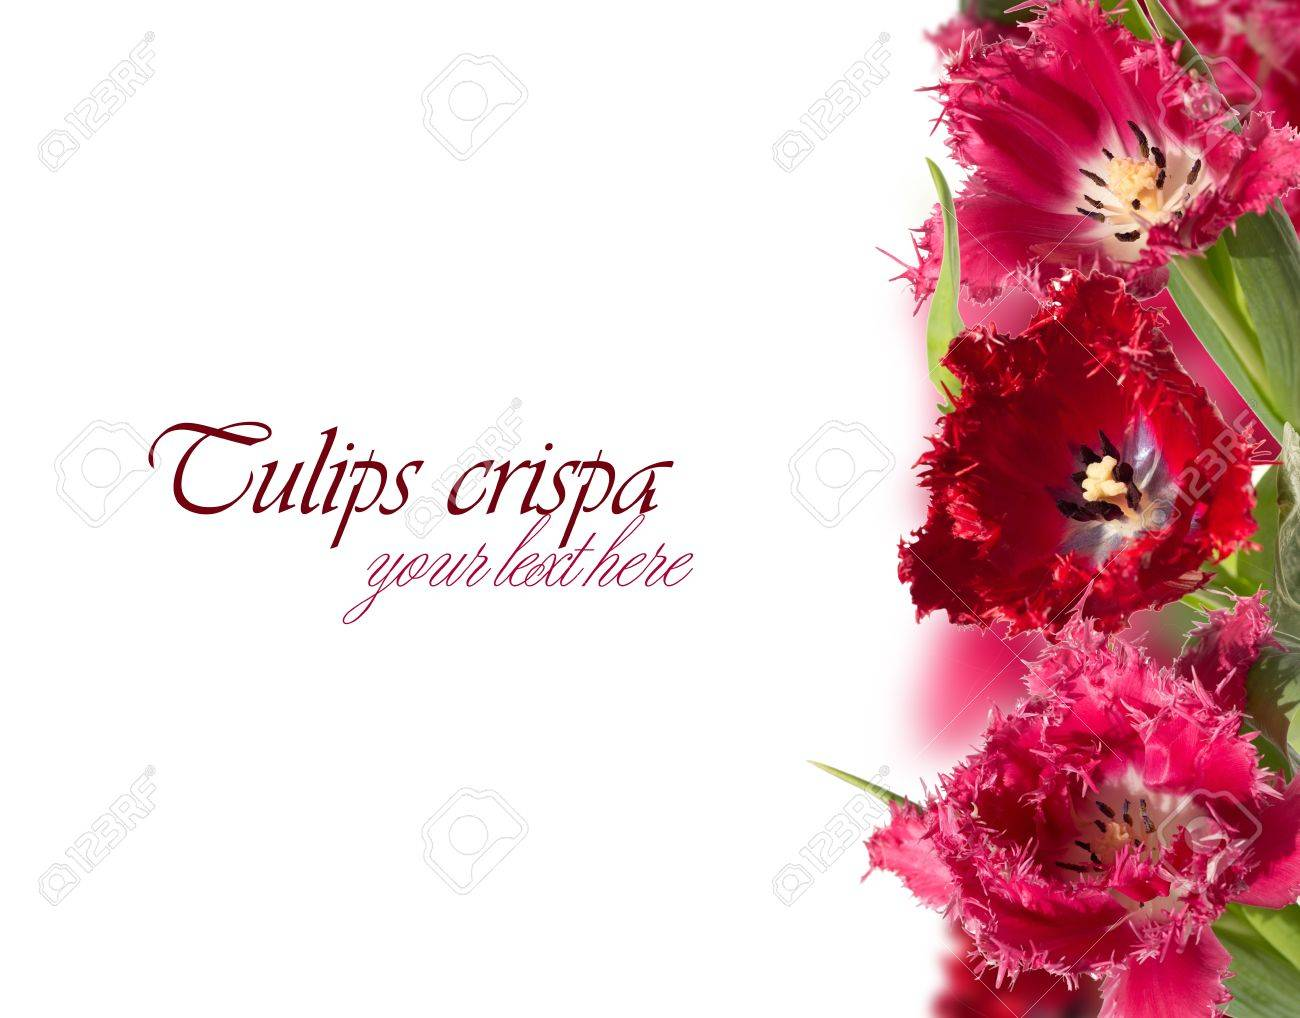 Fringed pink and red tulips (crispa) collage on the right side Stock Photo - 18363606